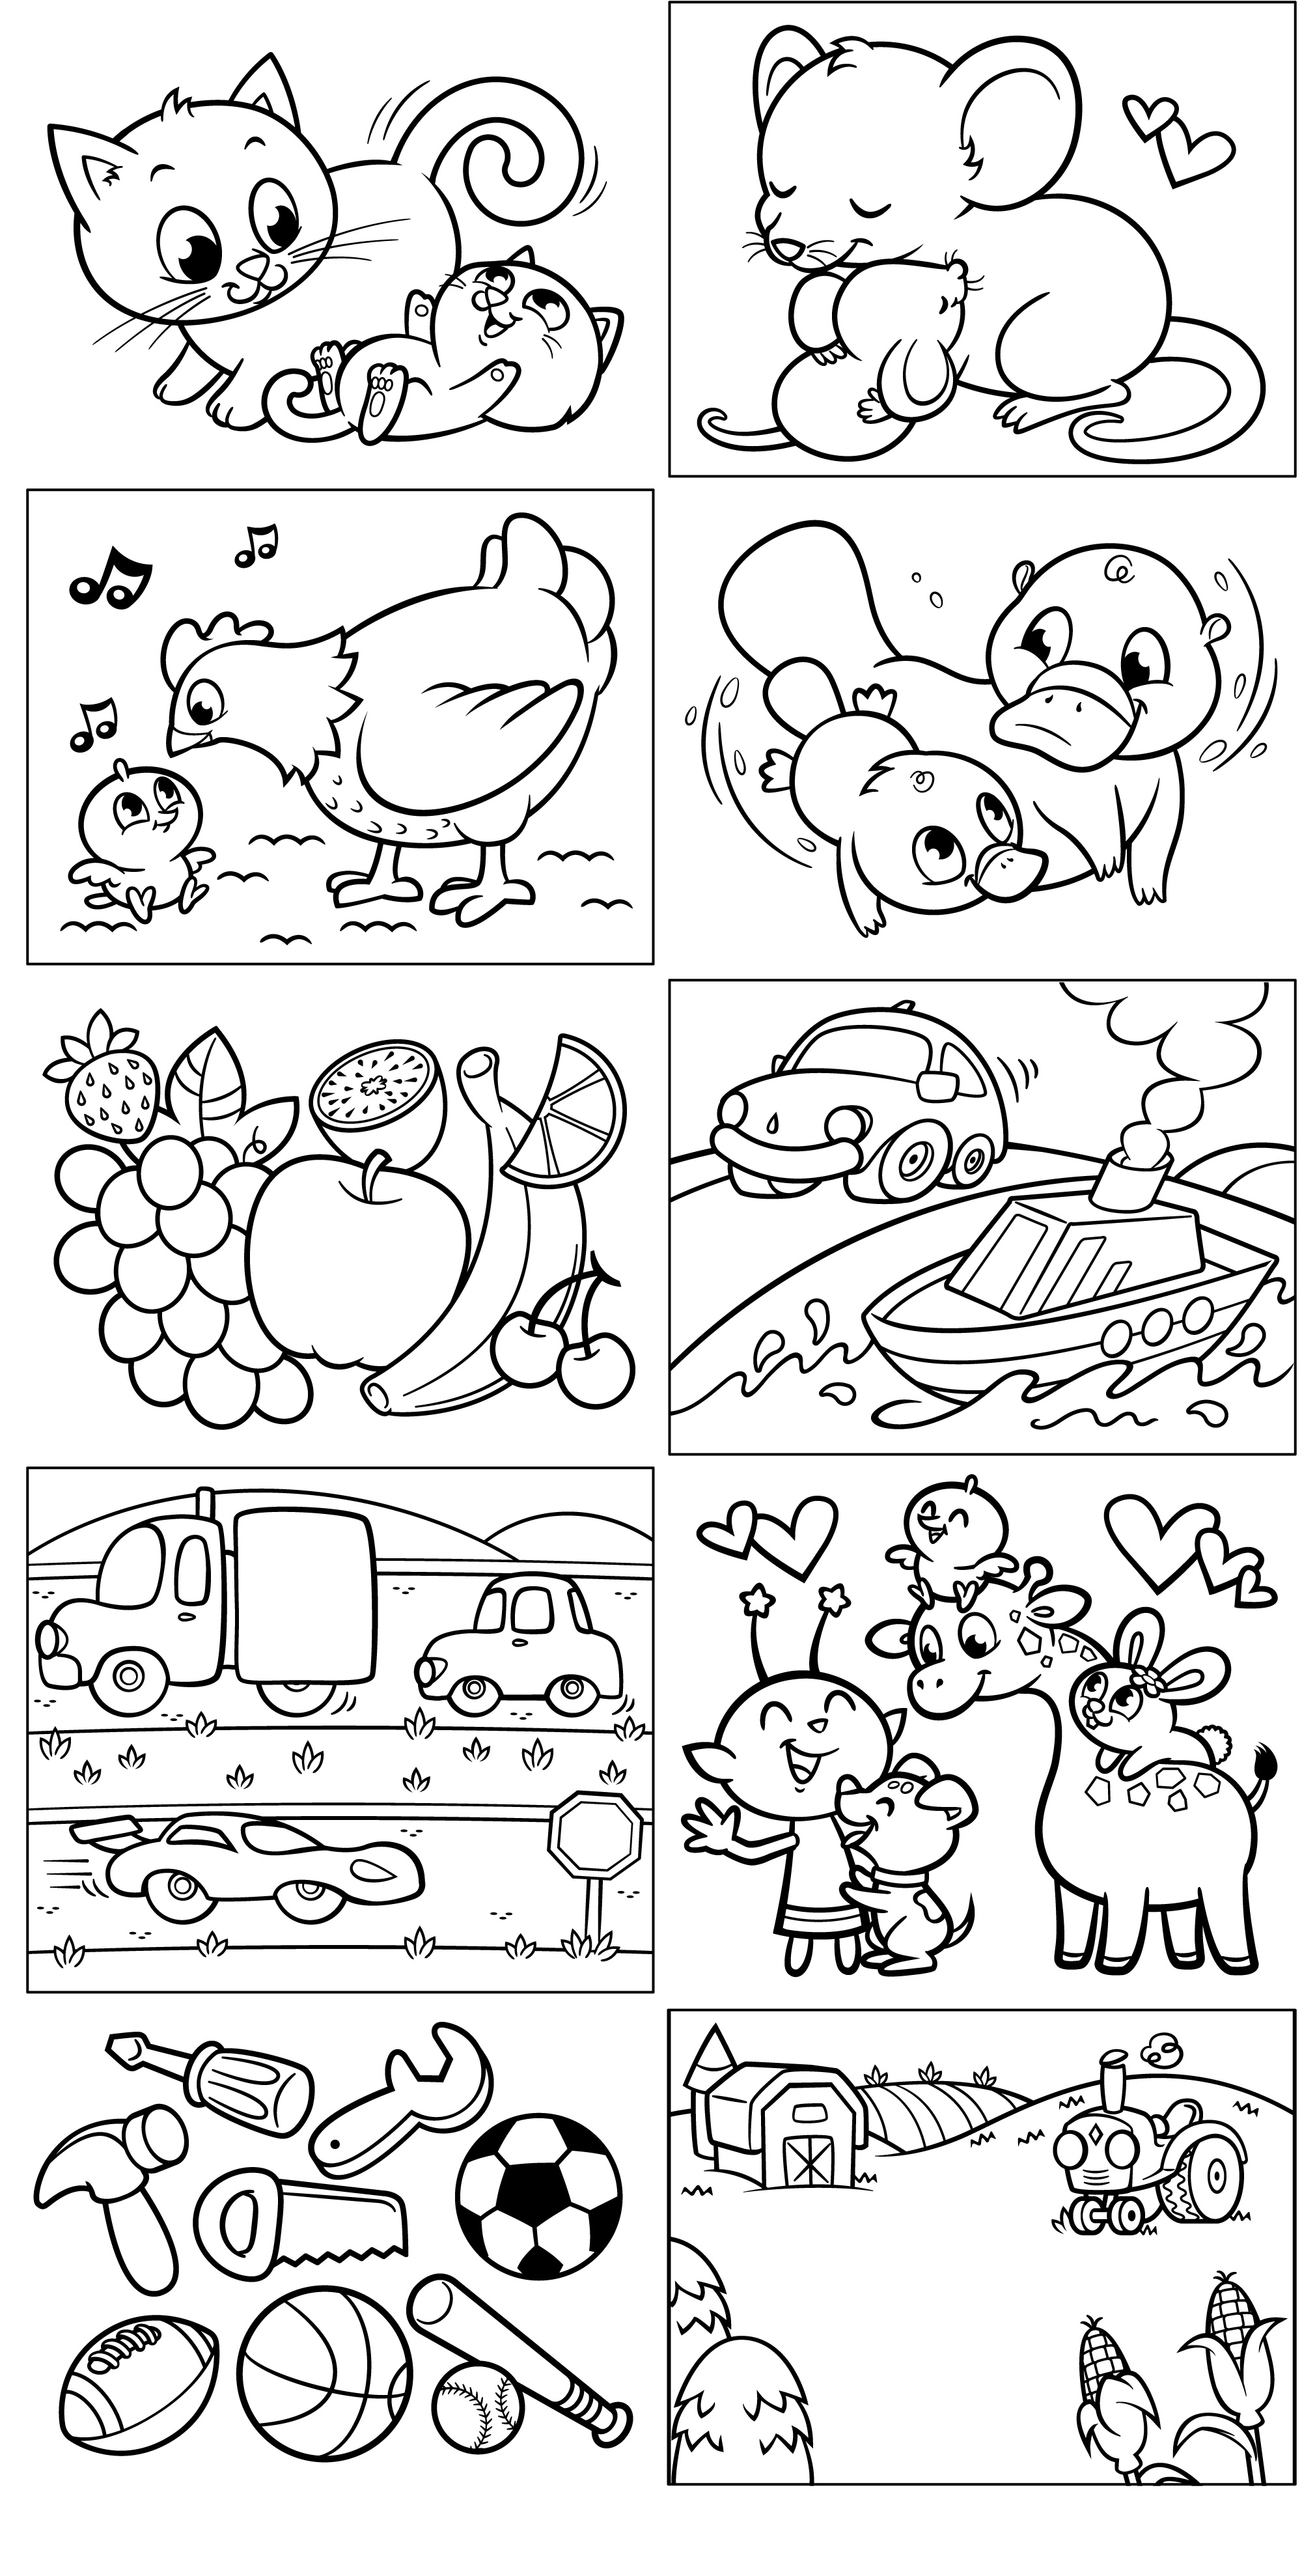 Page About Opposites Coloring Pages